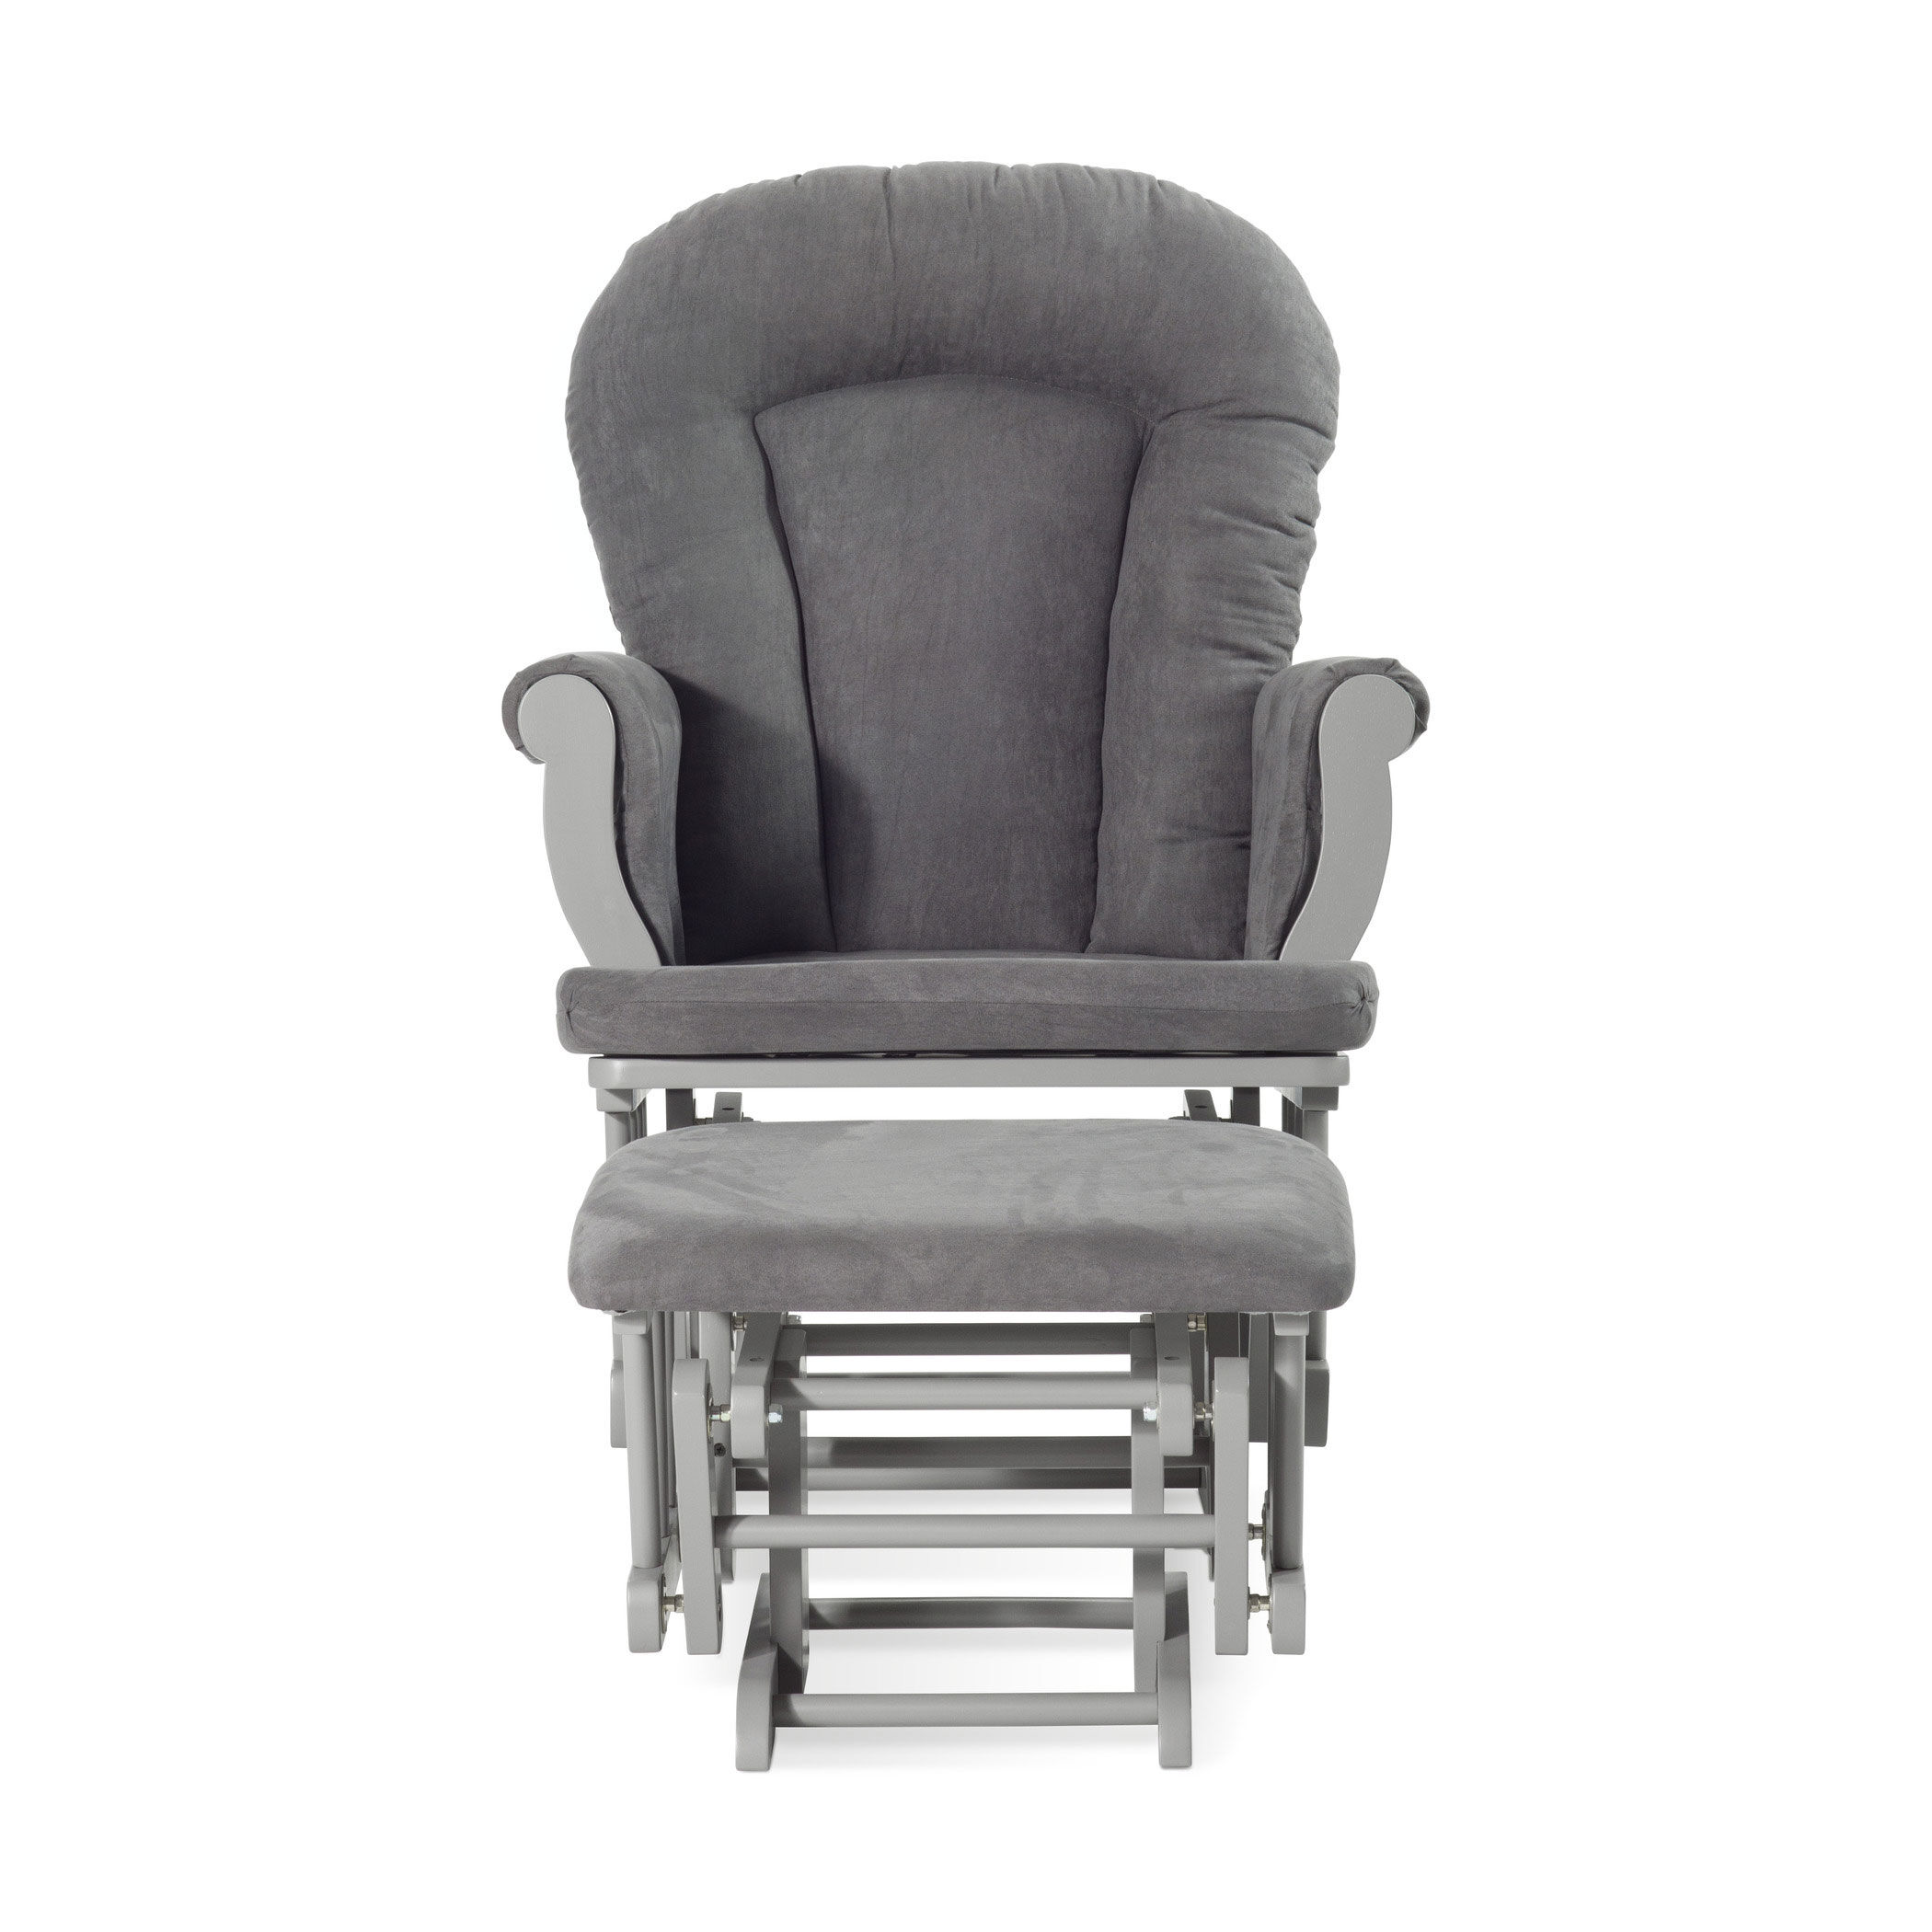 Cool Gray with Dark Gray Cushion Forever Eclectic by Child Craft Cozy Glider and Ottoman